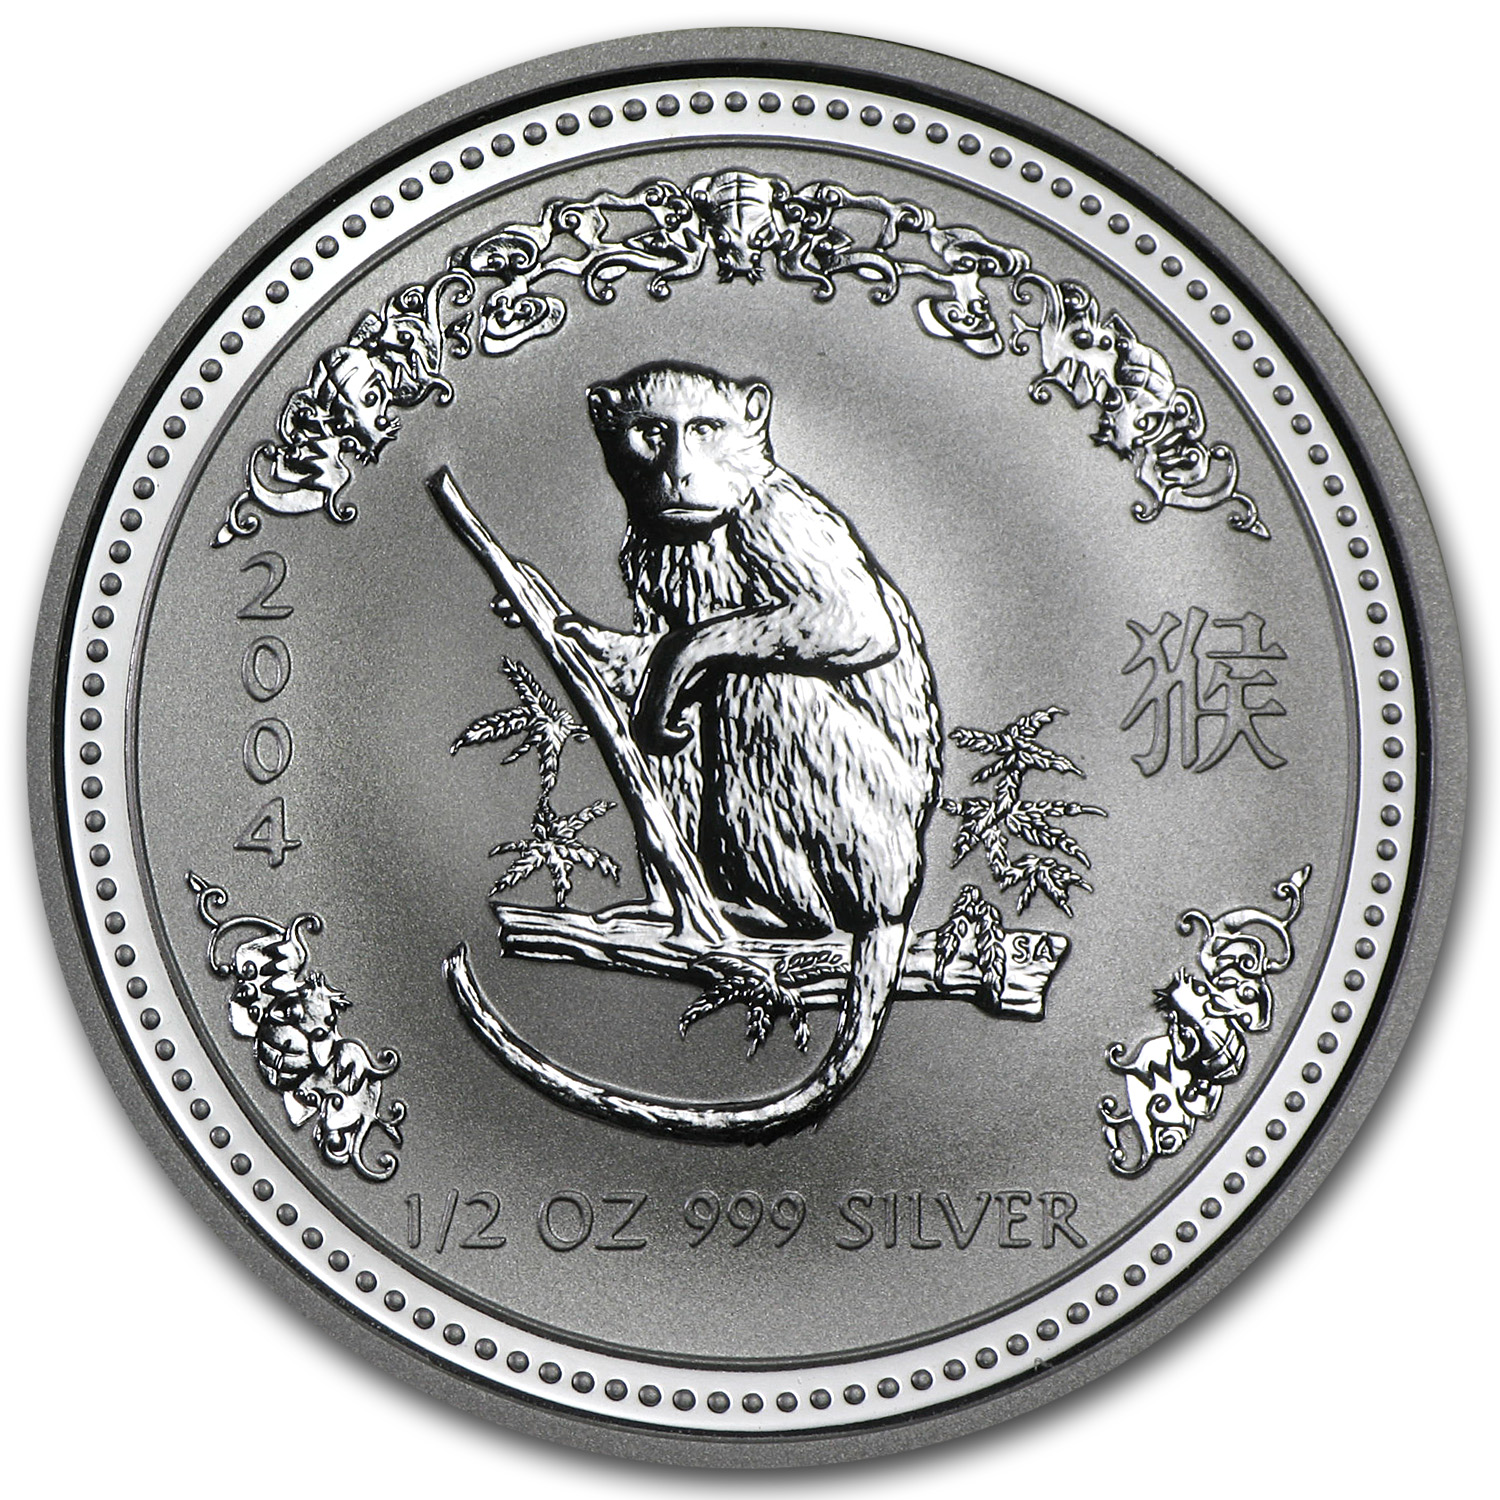 2004 1/2 oz Silver Australian Year of the Monkey BU